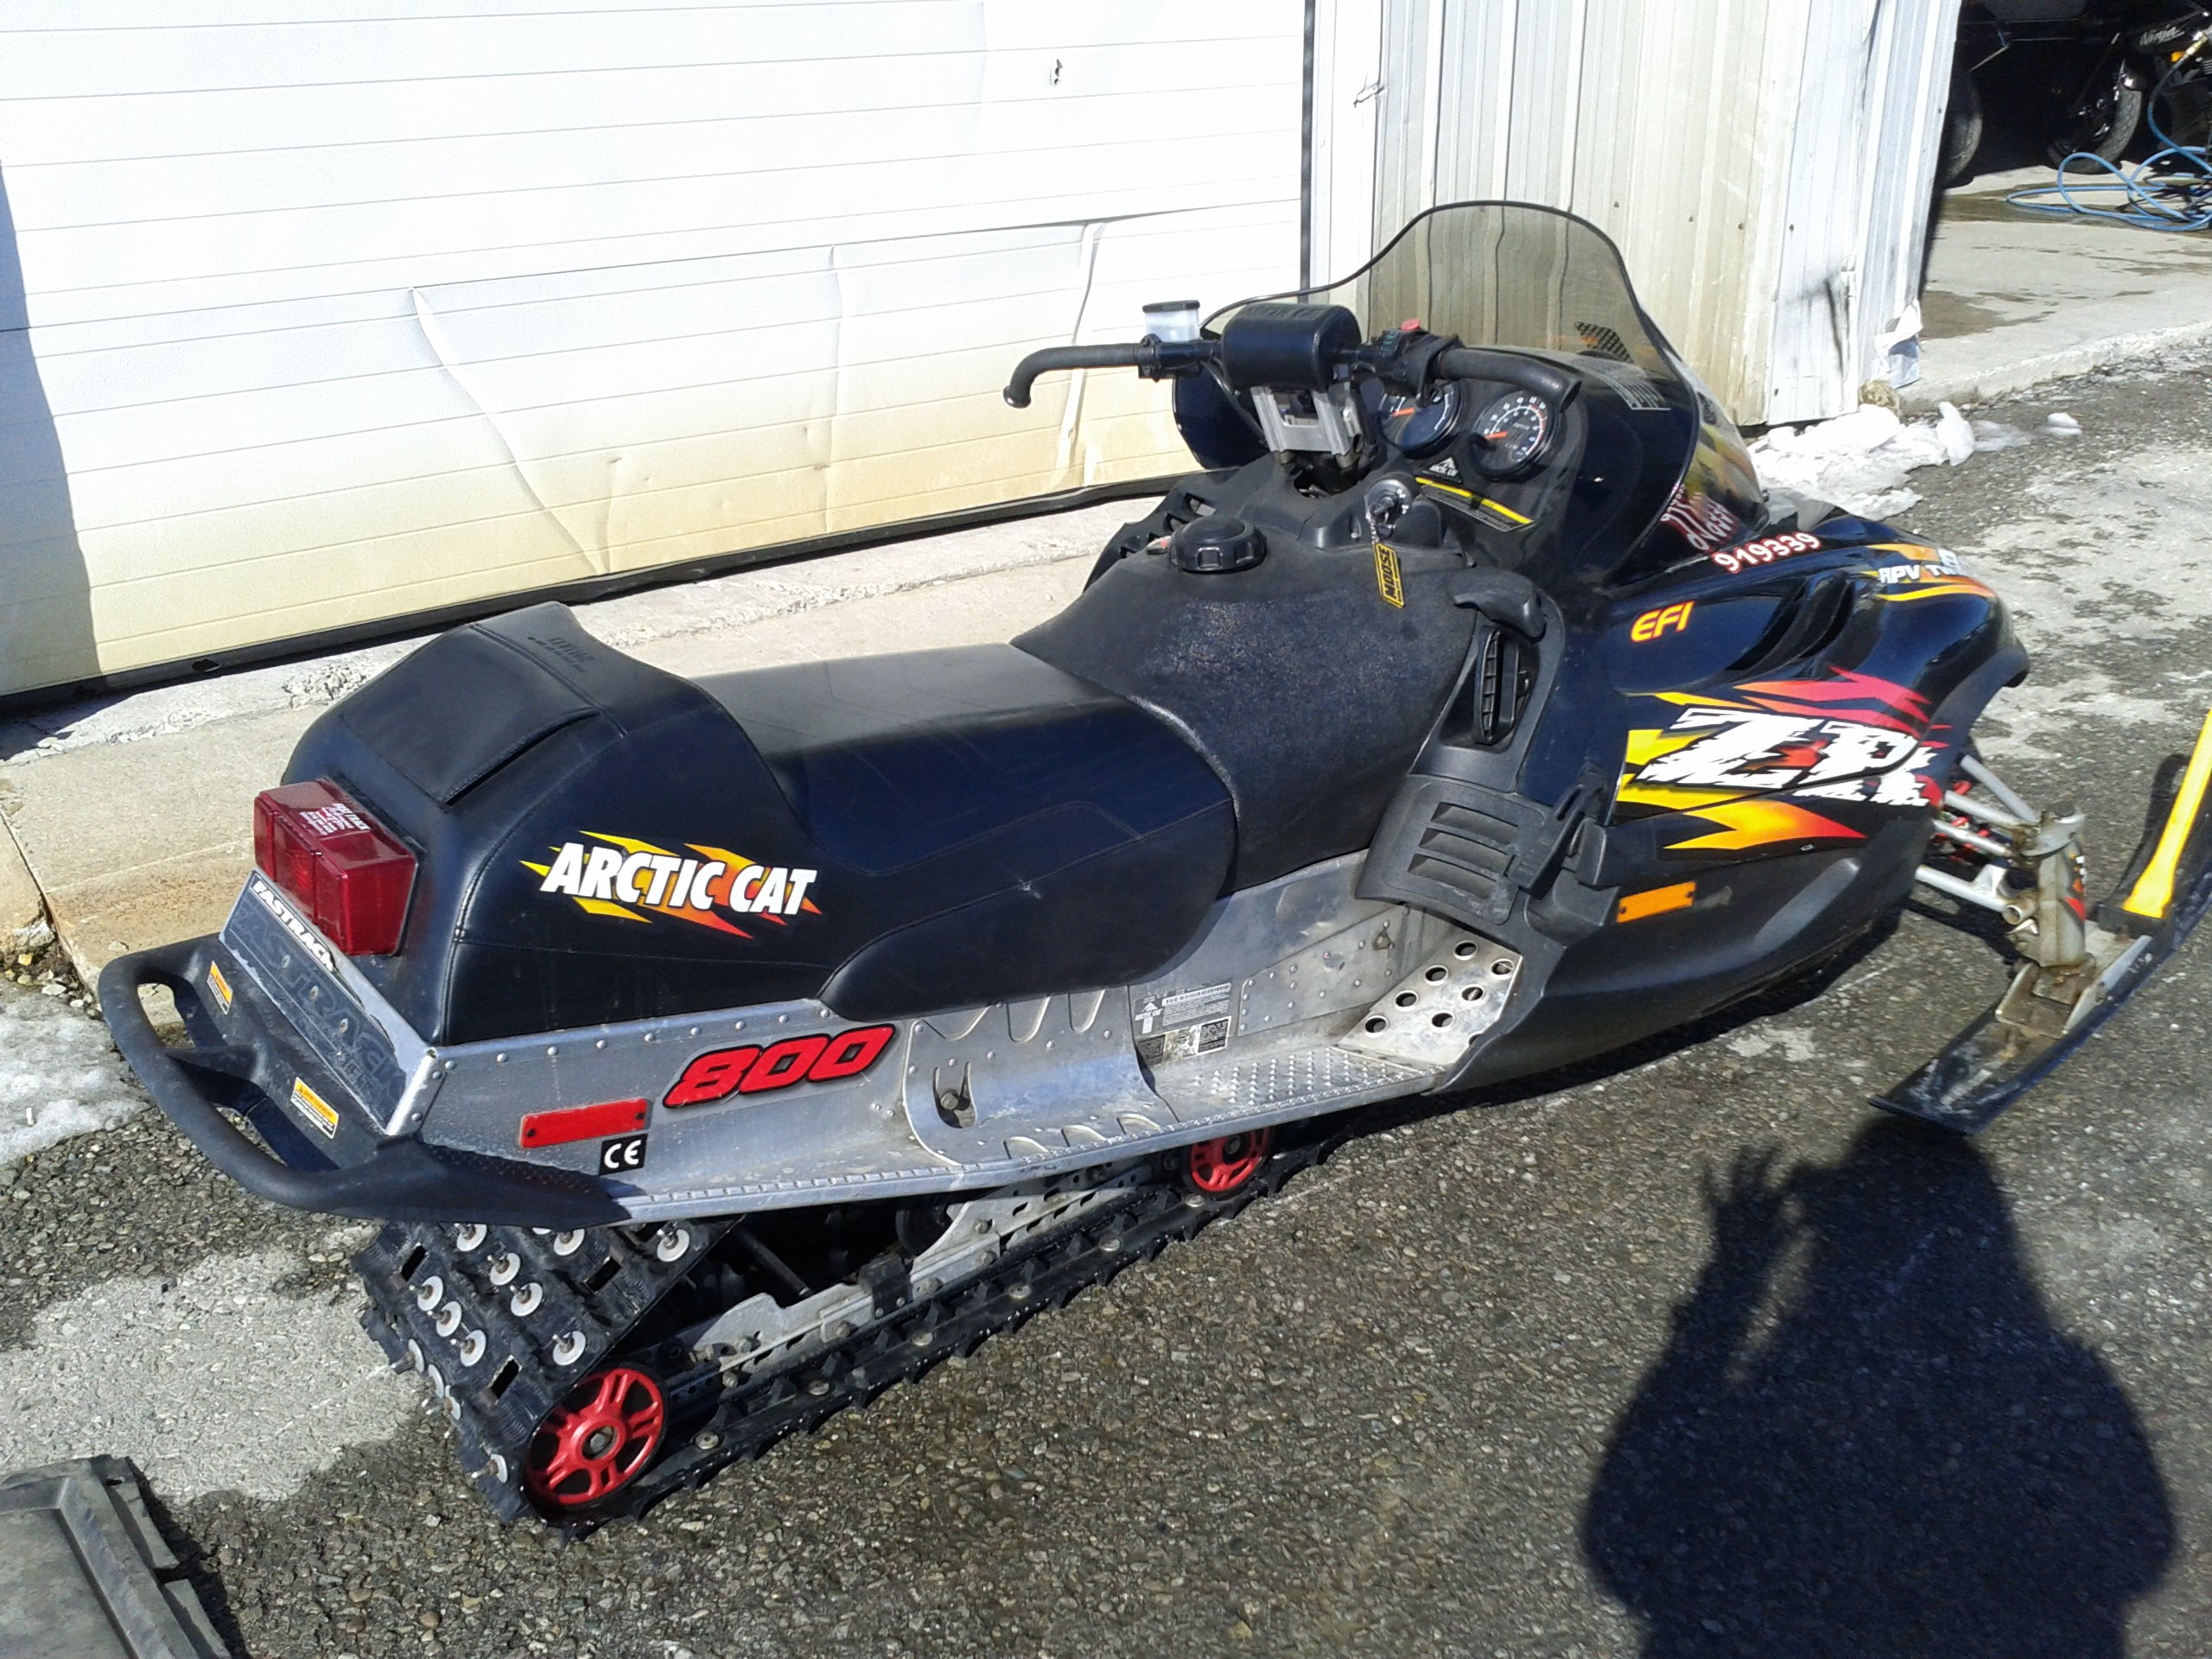 Arctic Cat Snowmobiles : New and used snowmobiles for sale sleds